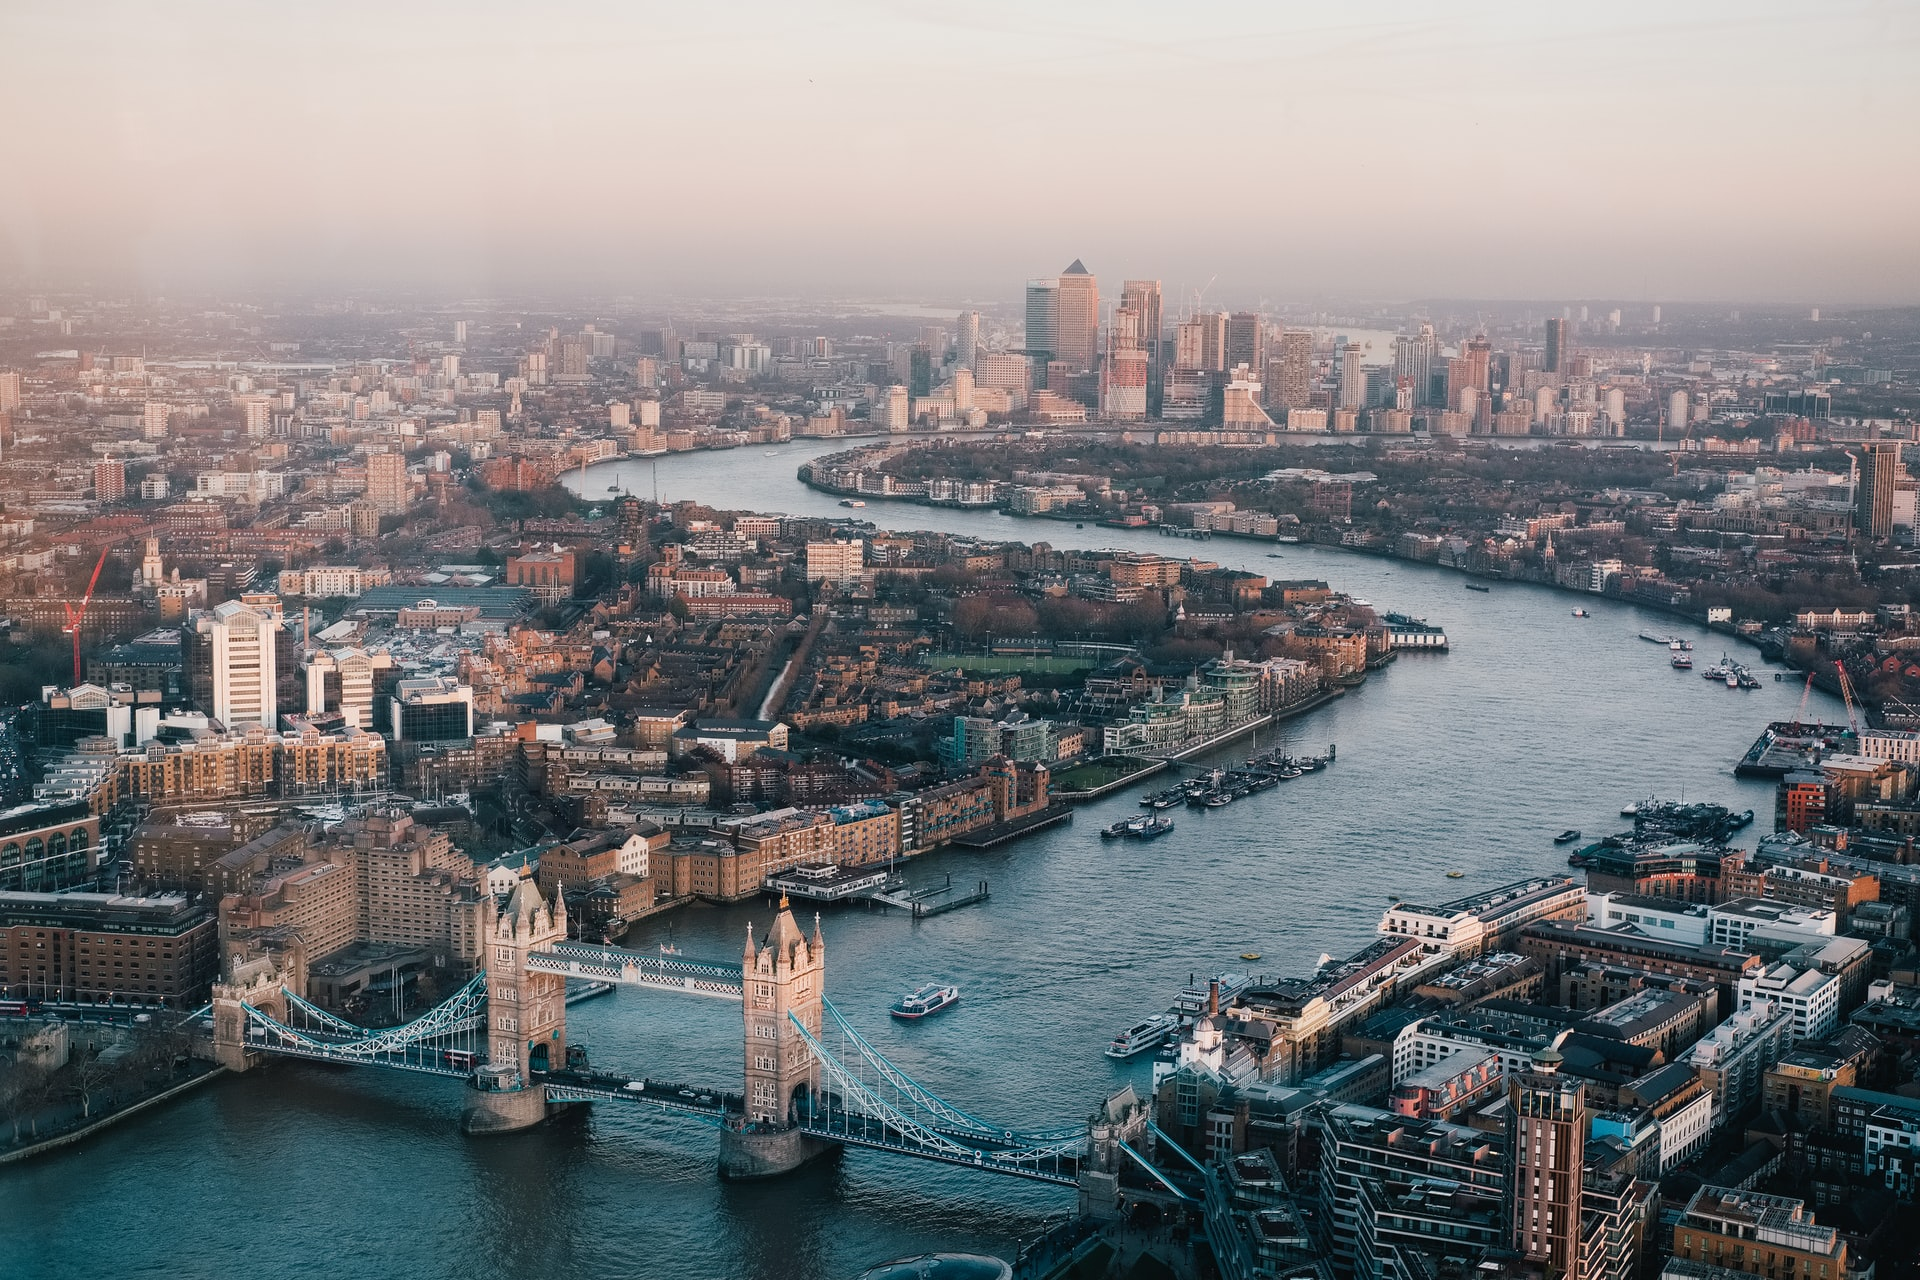 view-of-tower-bridge-thames-and-london-city-from-above-at-sunset